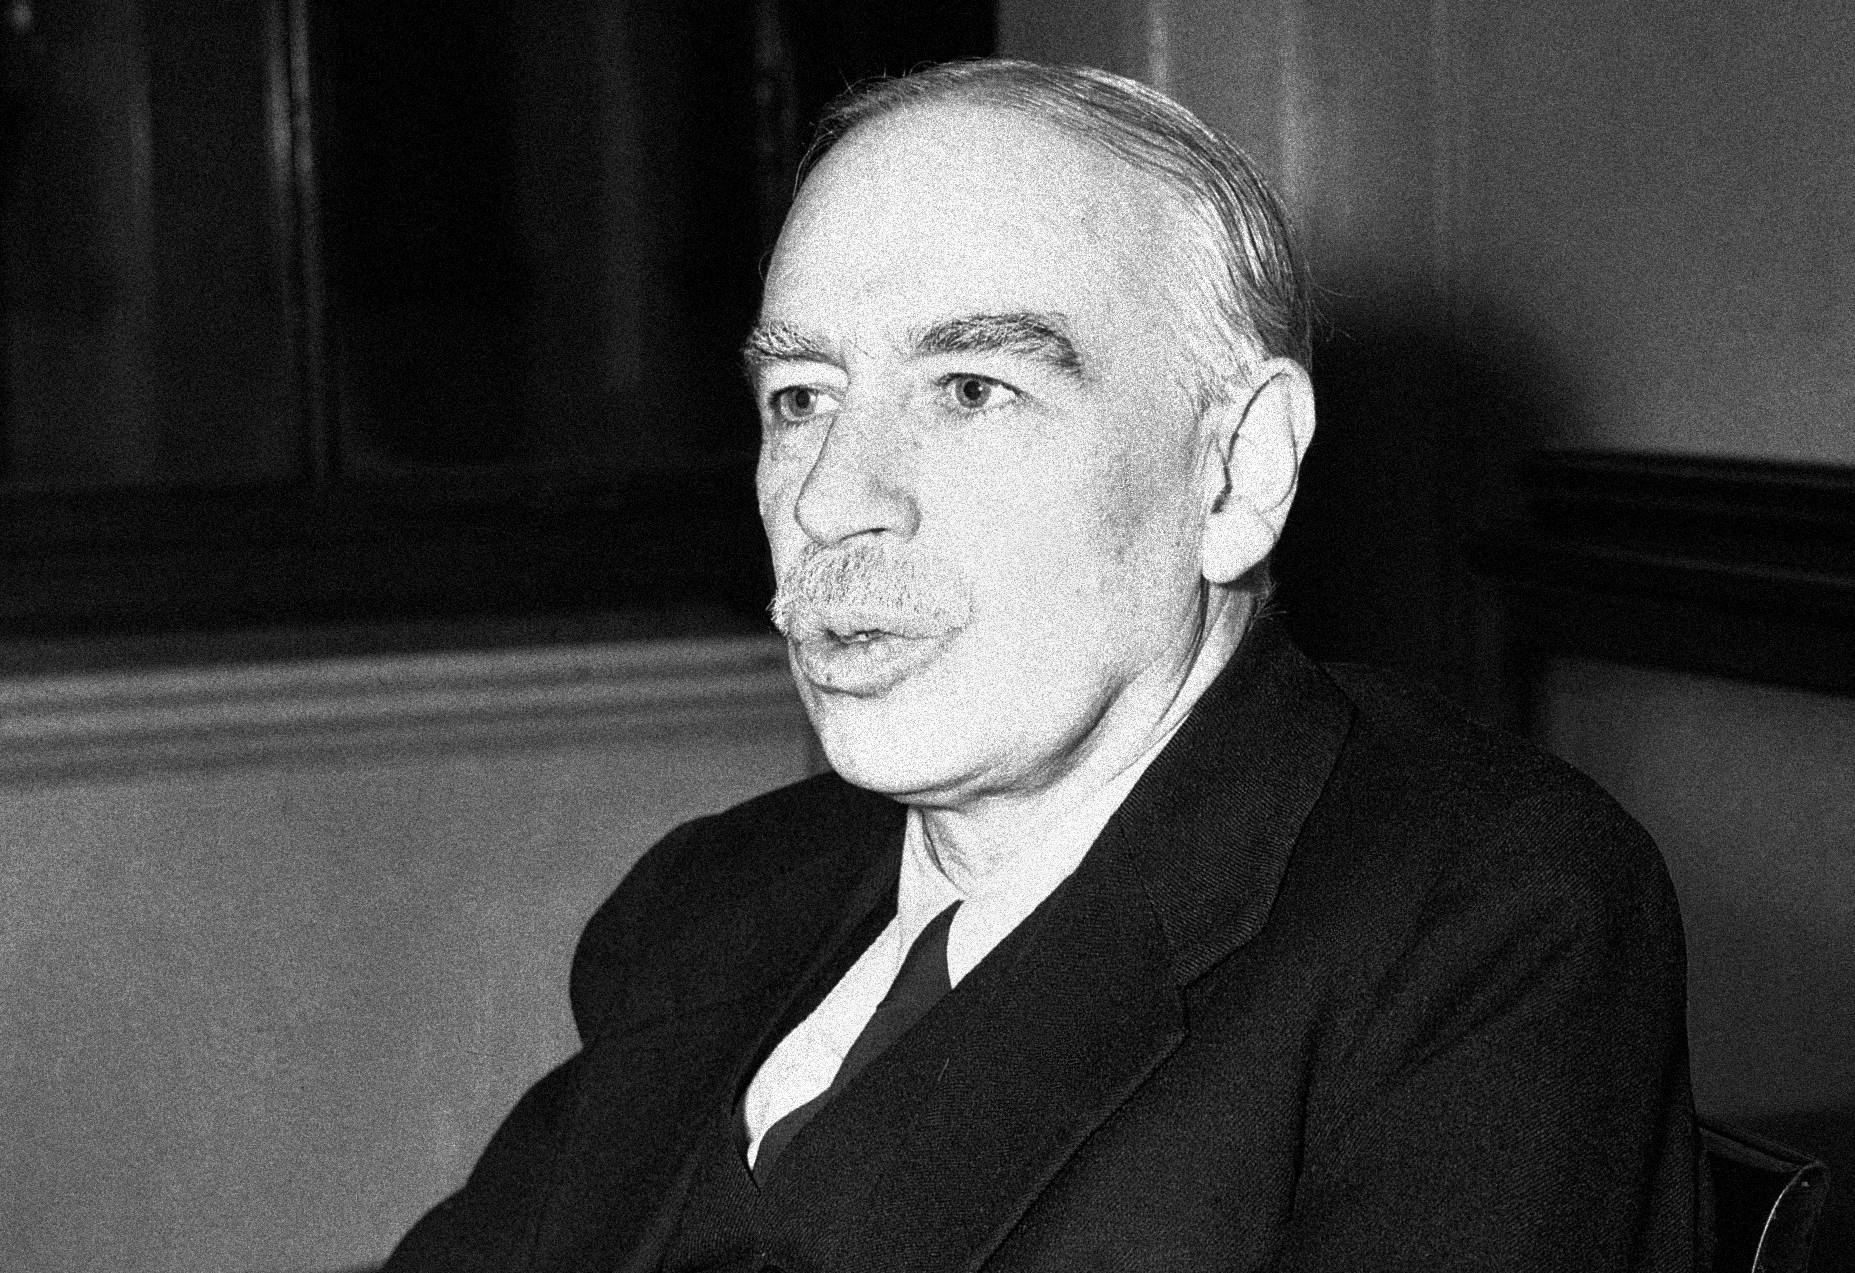 John Maynard Keynes in his office at the Treasury in London on Aug. 25, 1945. (AP)